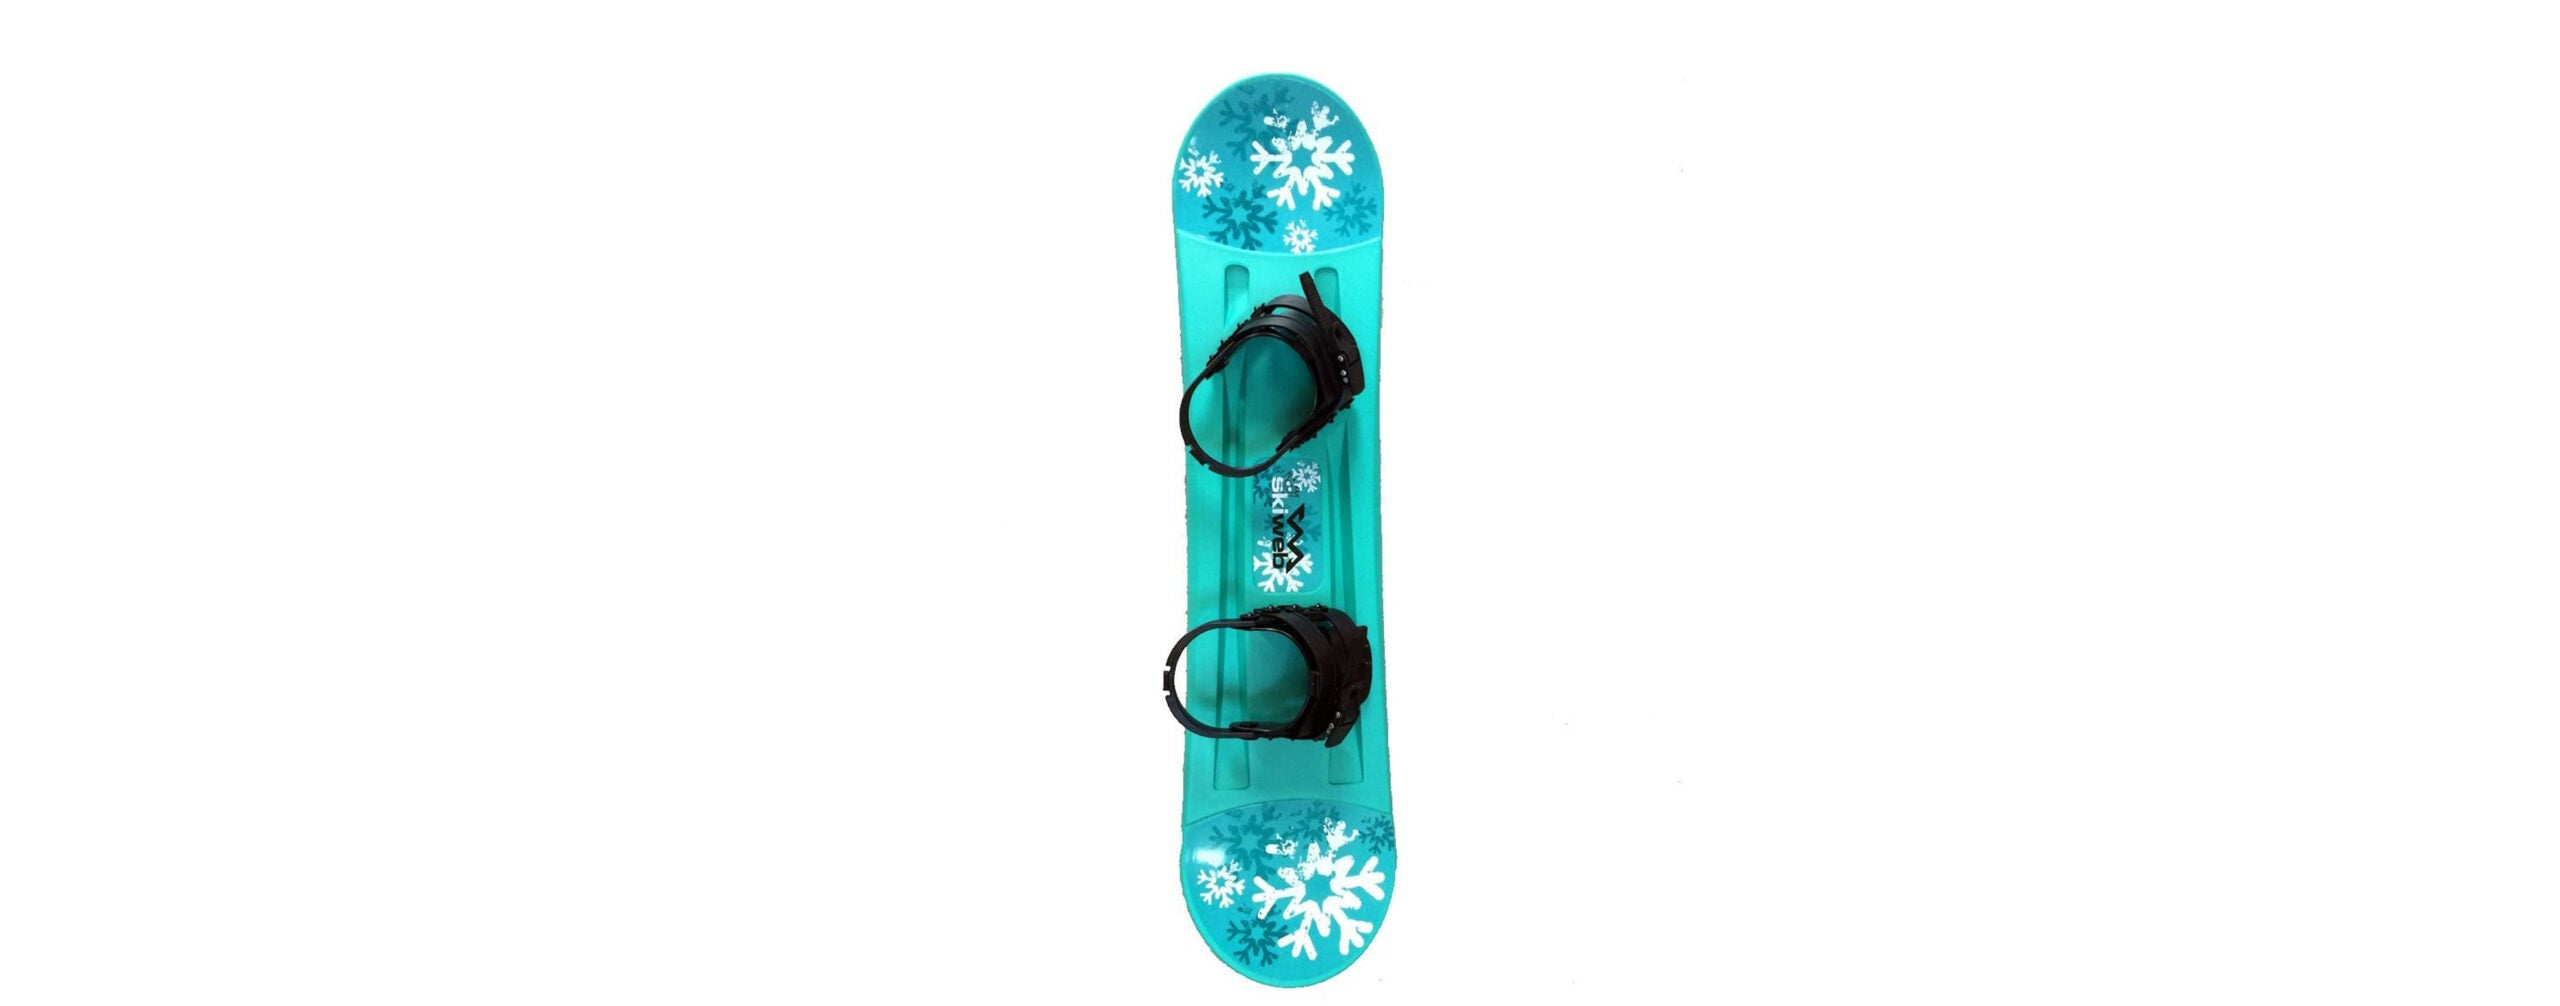 The Best Kids' Snowboards (Review and Buying Guide) of 2021